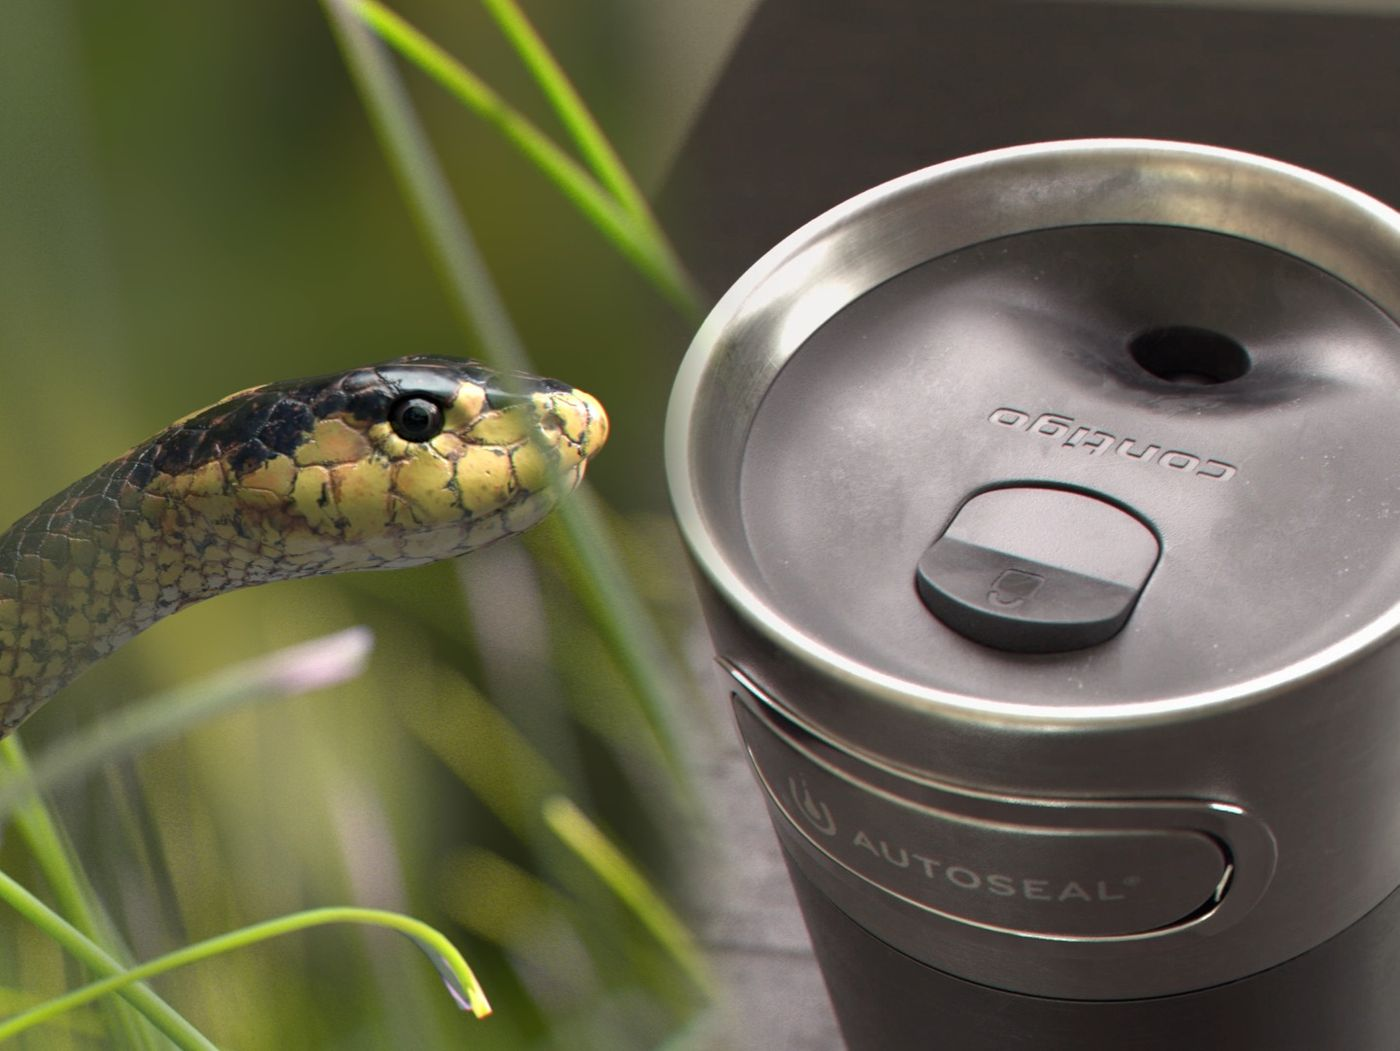 VFX entry: A snake and a bottle